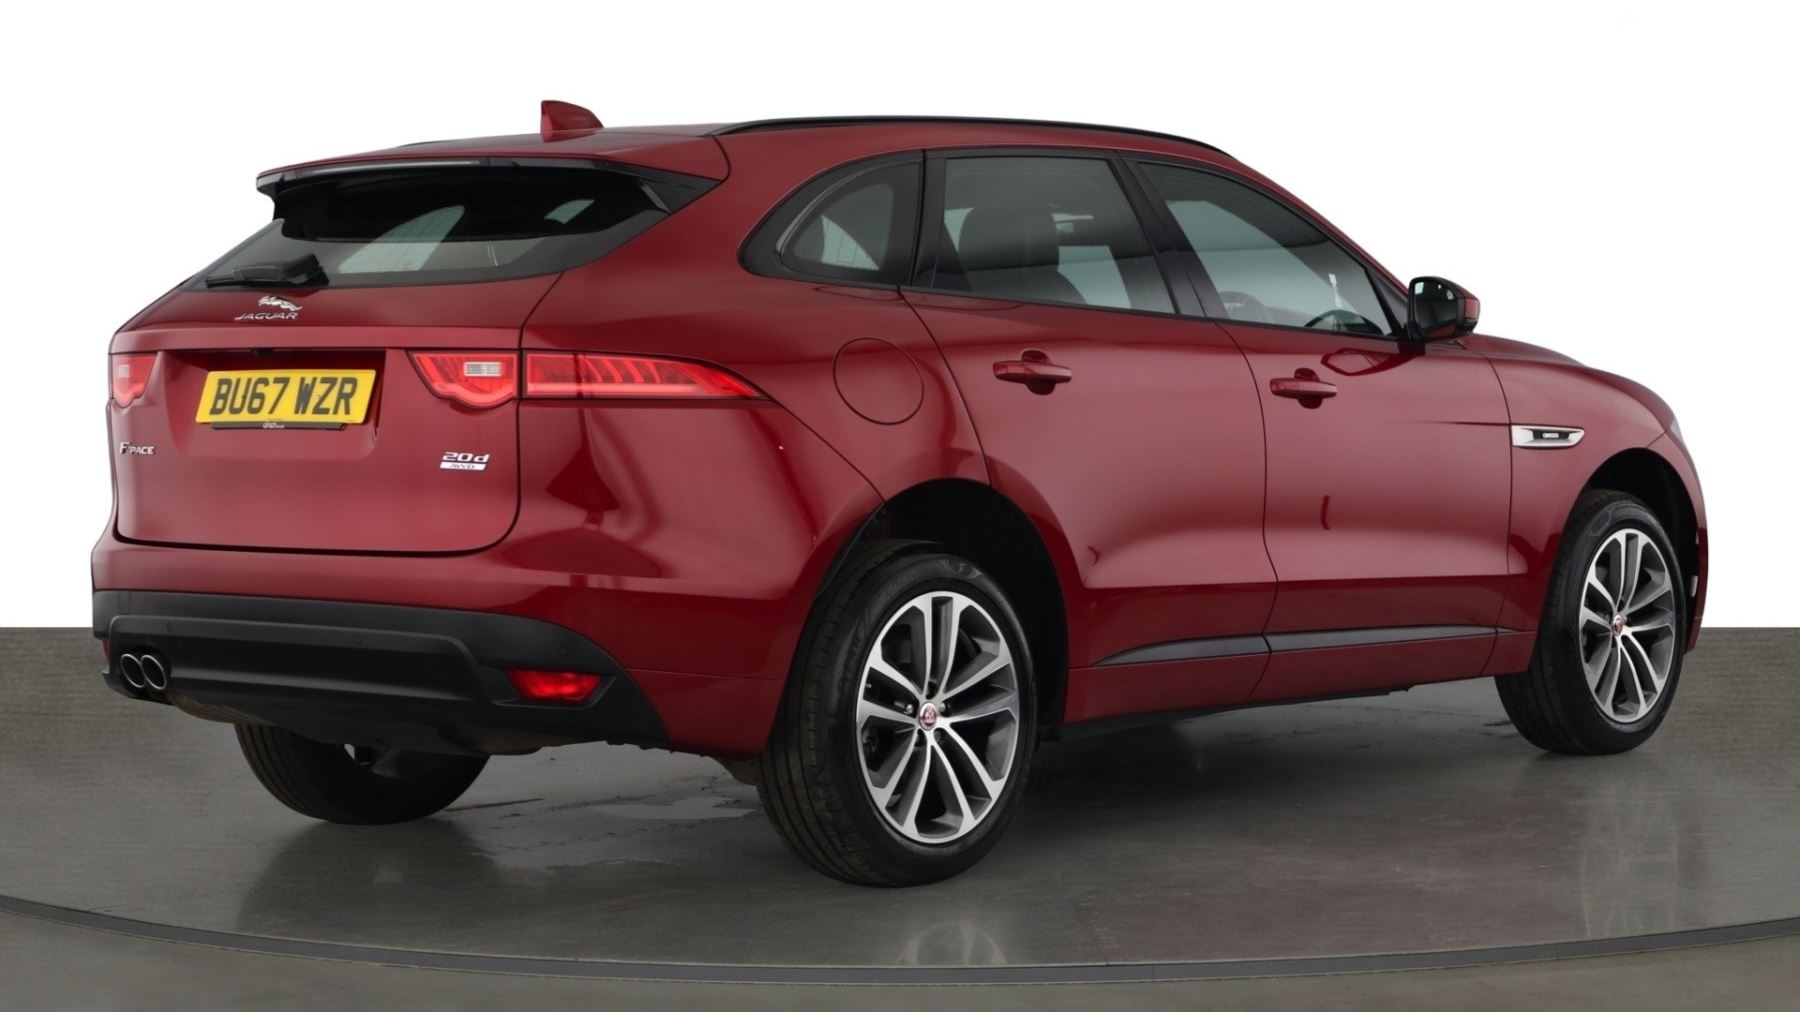 Jaguar F-PACE 2.0d R-Sport AWD - Sliding Panoramic Roof - Rear View Camera image 6